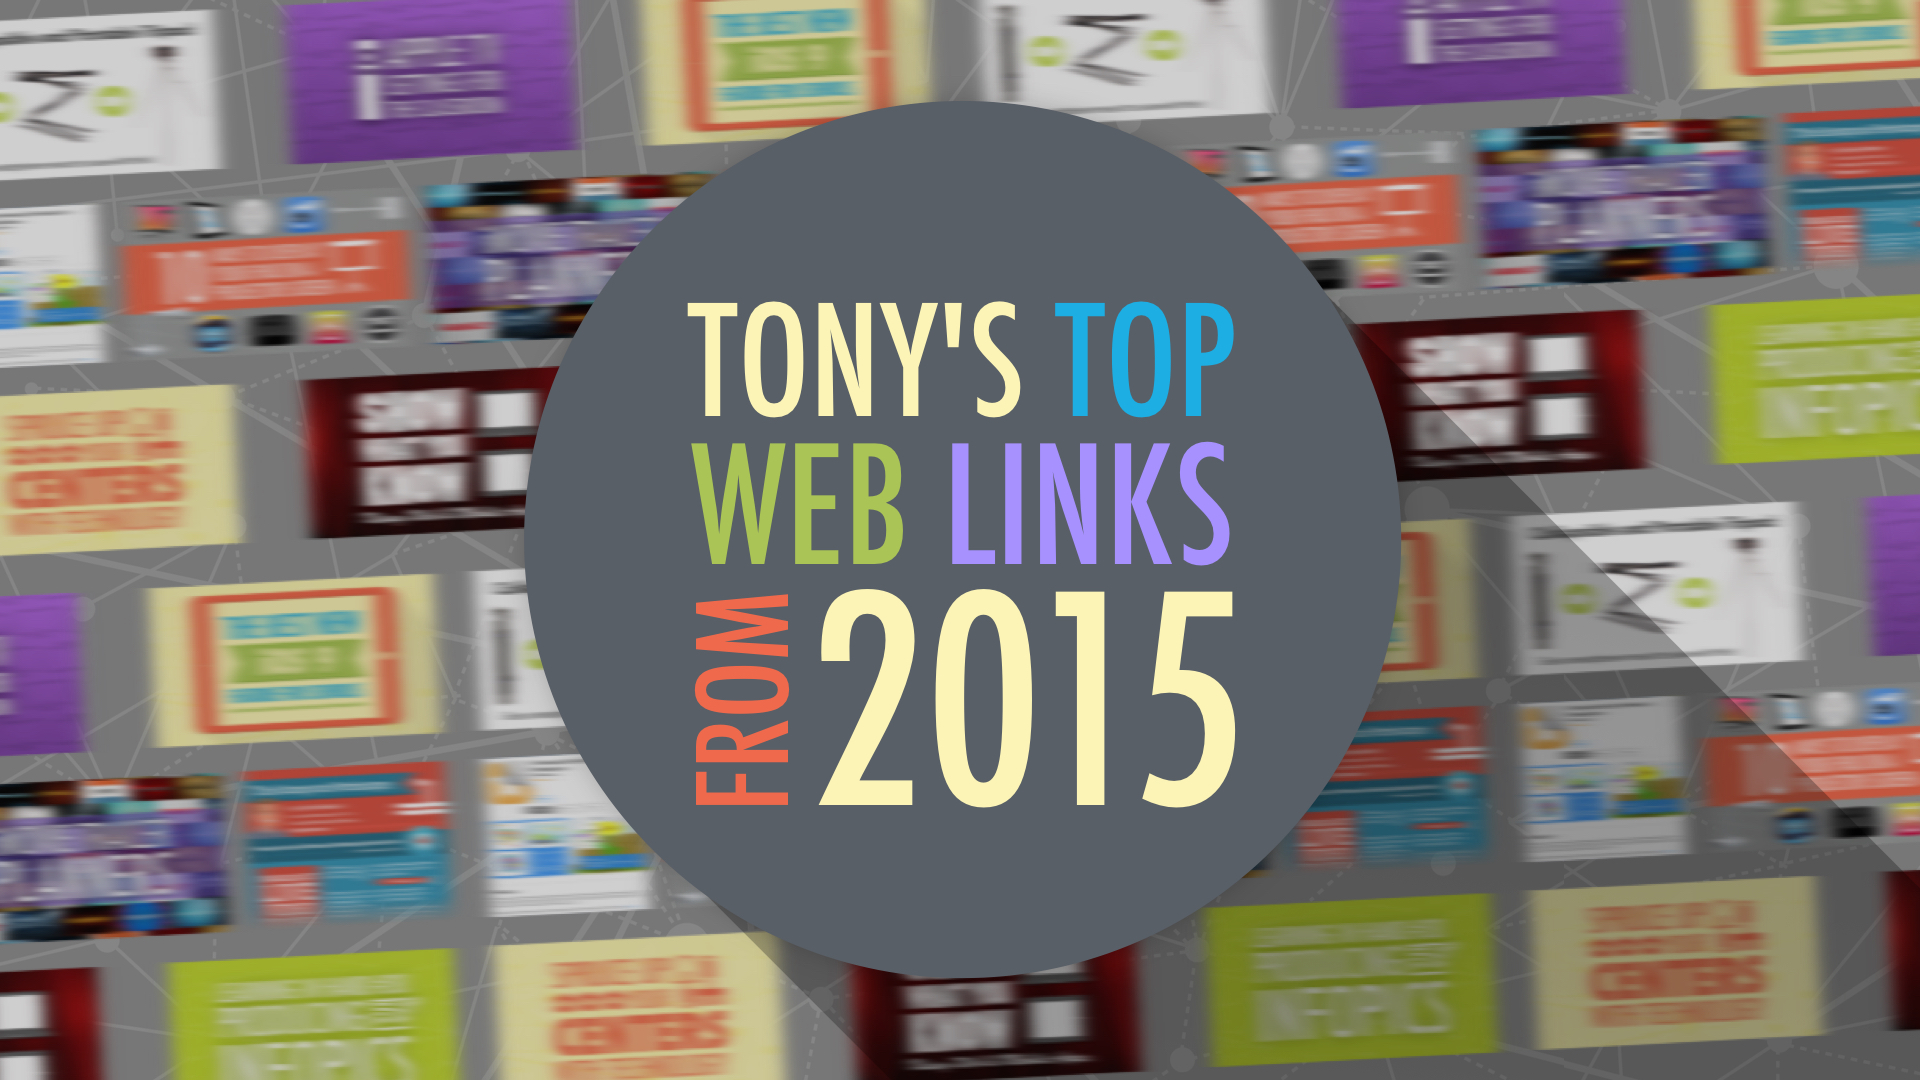 Tony's Top Web Links from 2015